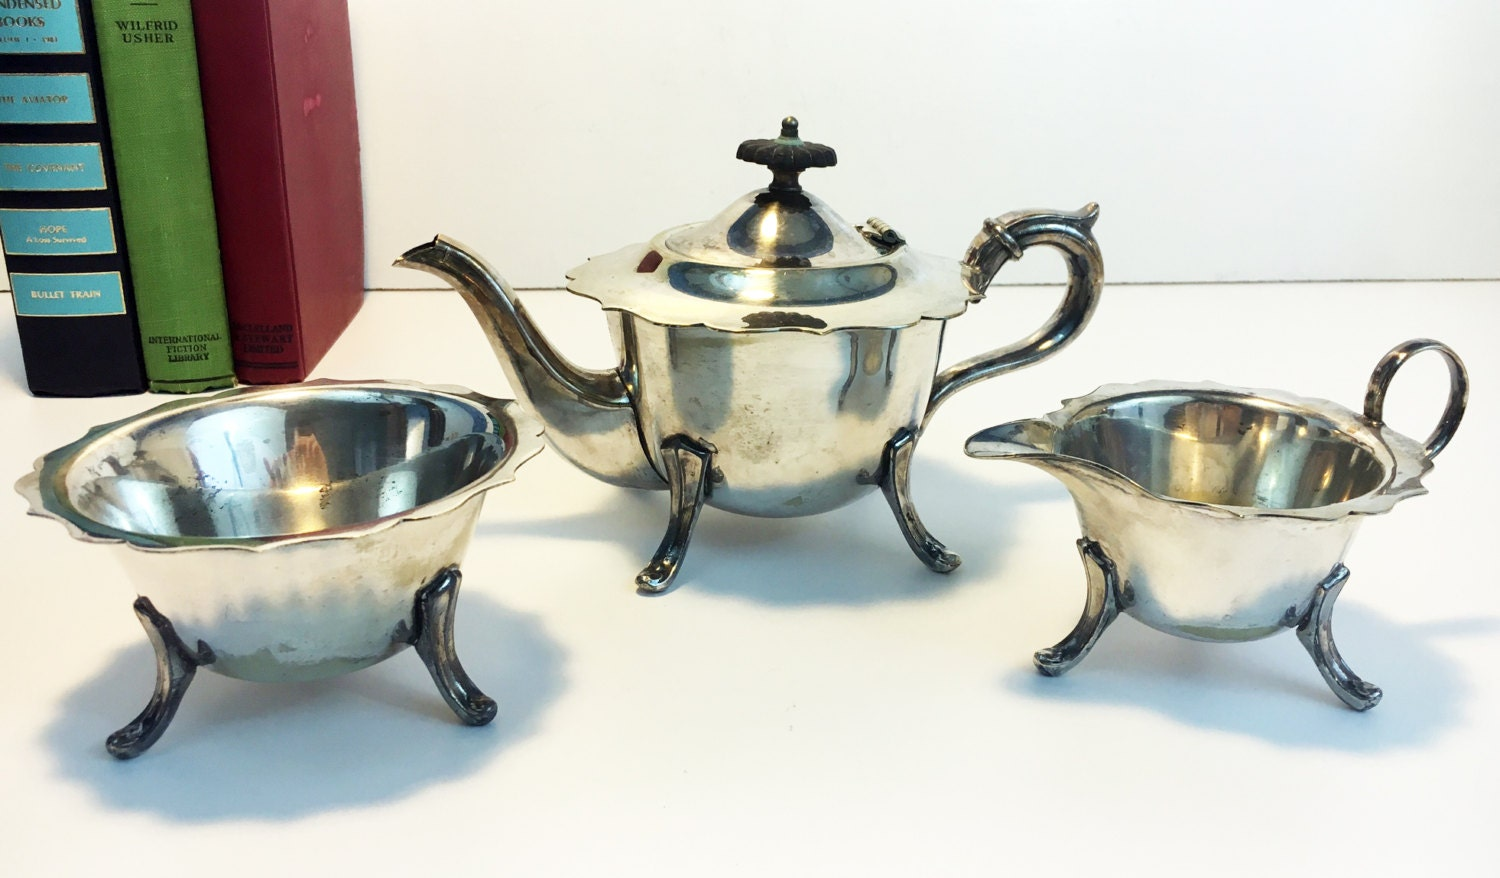 23e85abaef953 ... Silver Plate English Tea Set - Tea pot Creamer Sugar Bowl Scalloped  Edges - Vintage 3 Piece TEA SERVICE Teapot or Coffeepot EPNS. gallery photo  gallery ...